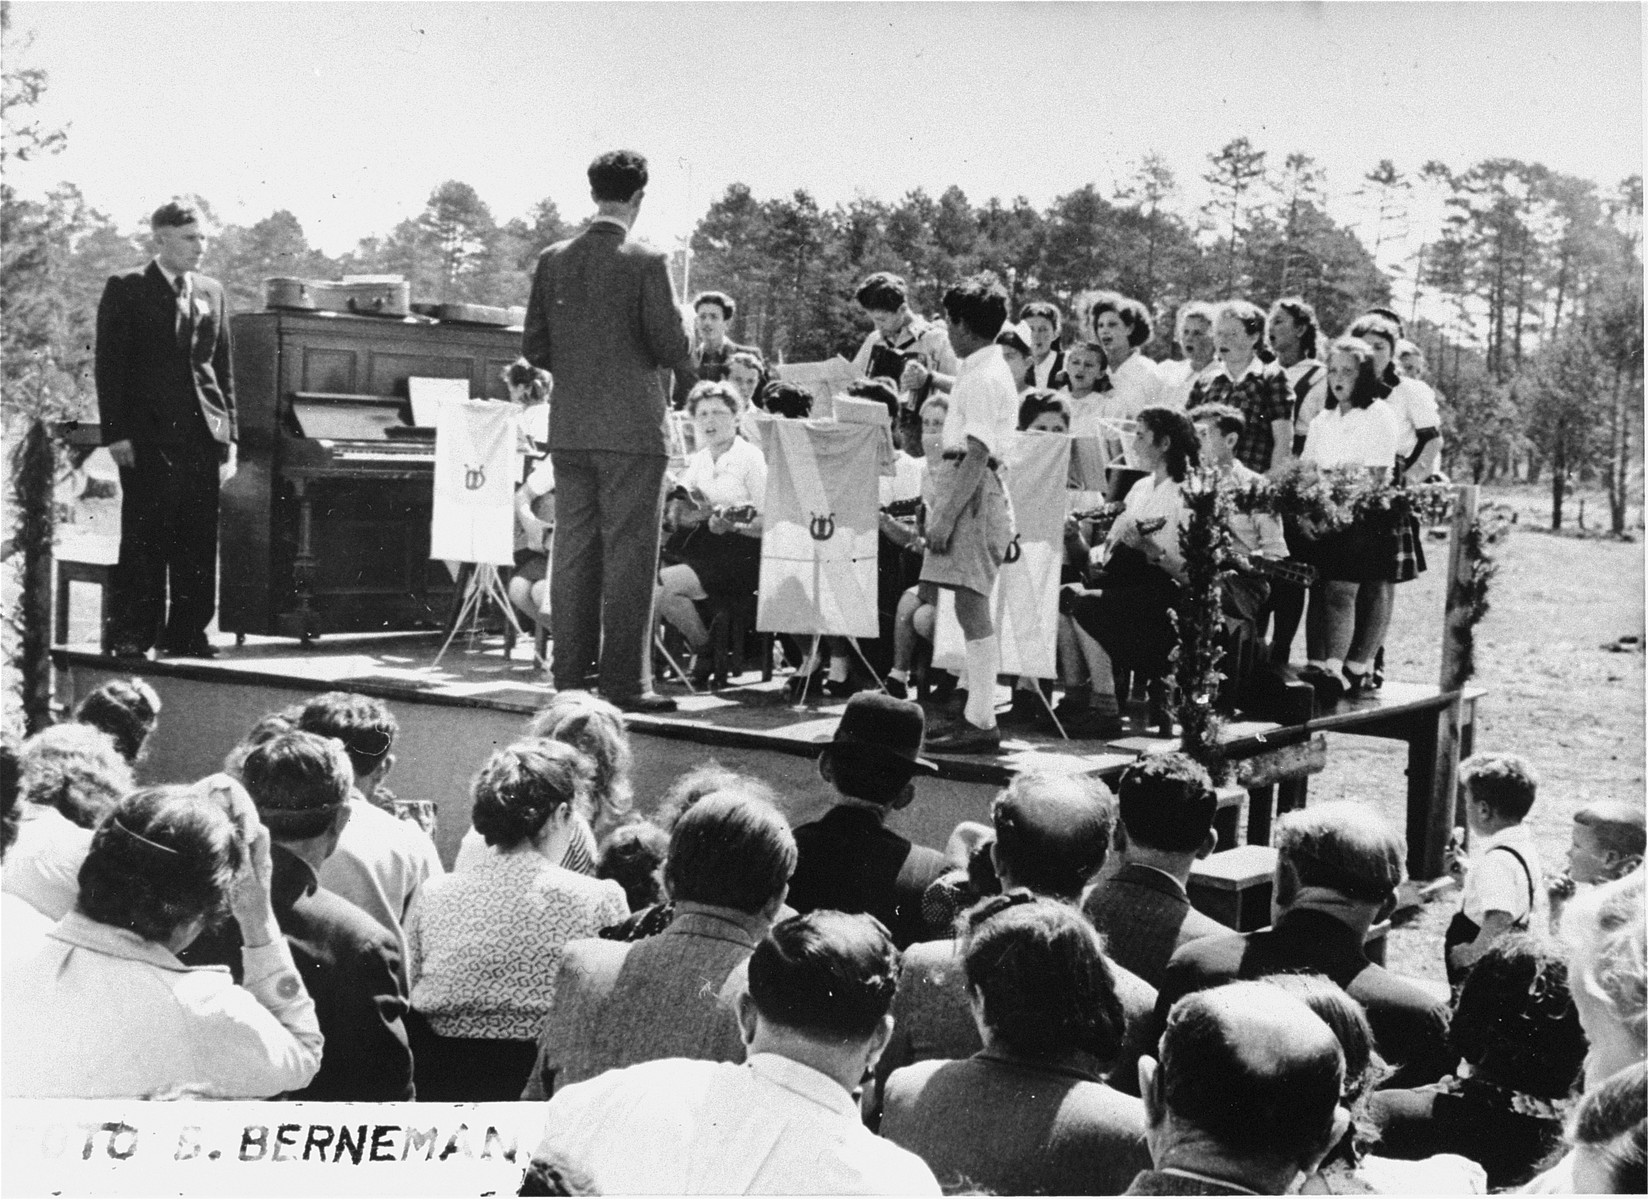 The children's orchestra at the Foehrenwald displaced persons camp performs during a Lag B'Omer celebration.